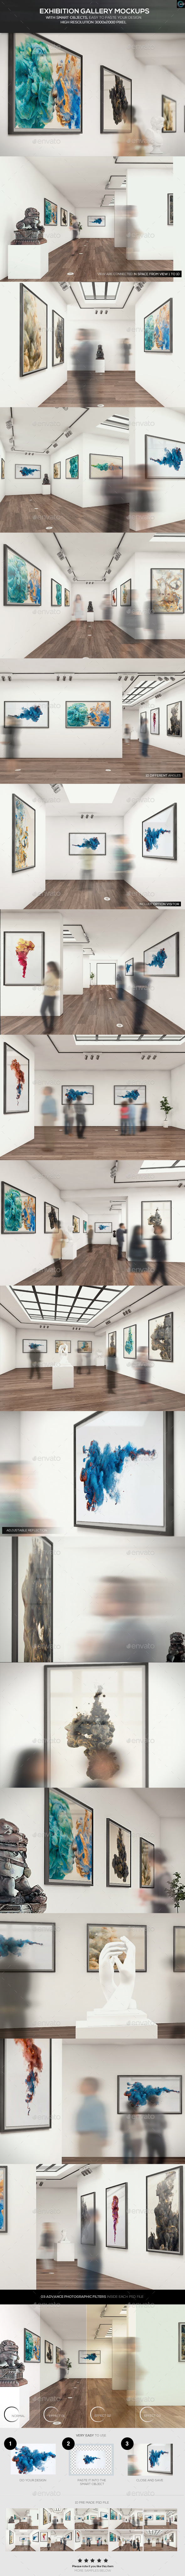 Exhibition Gallery Mockups - Posters Print